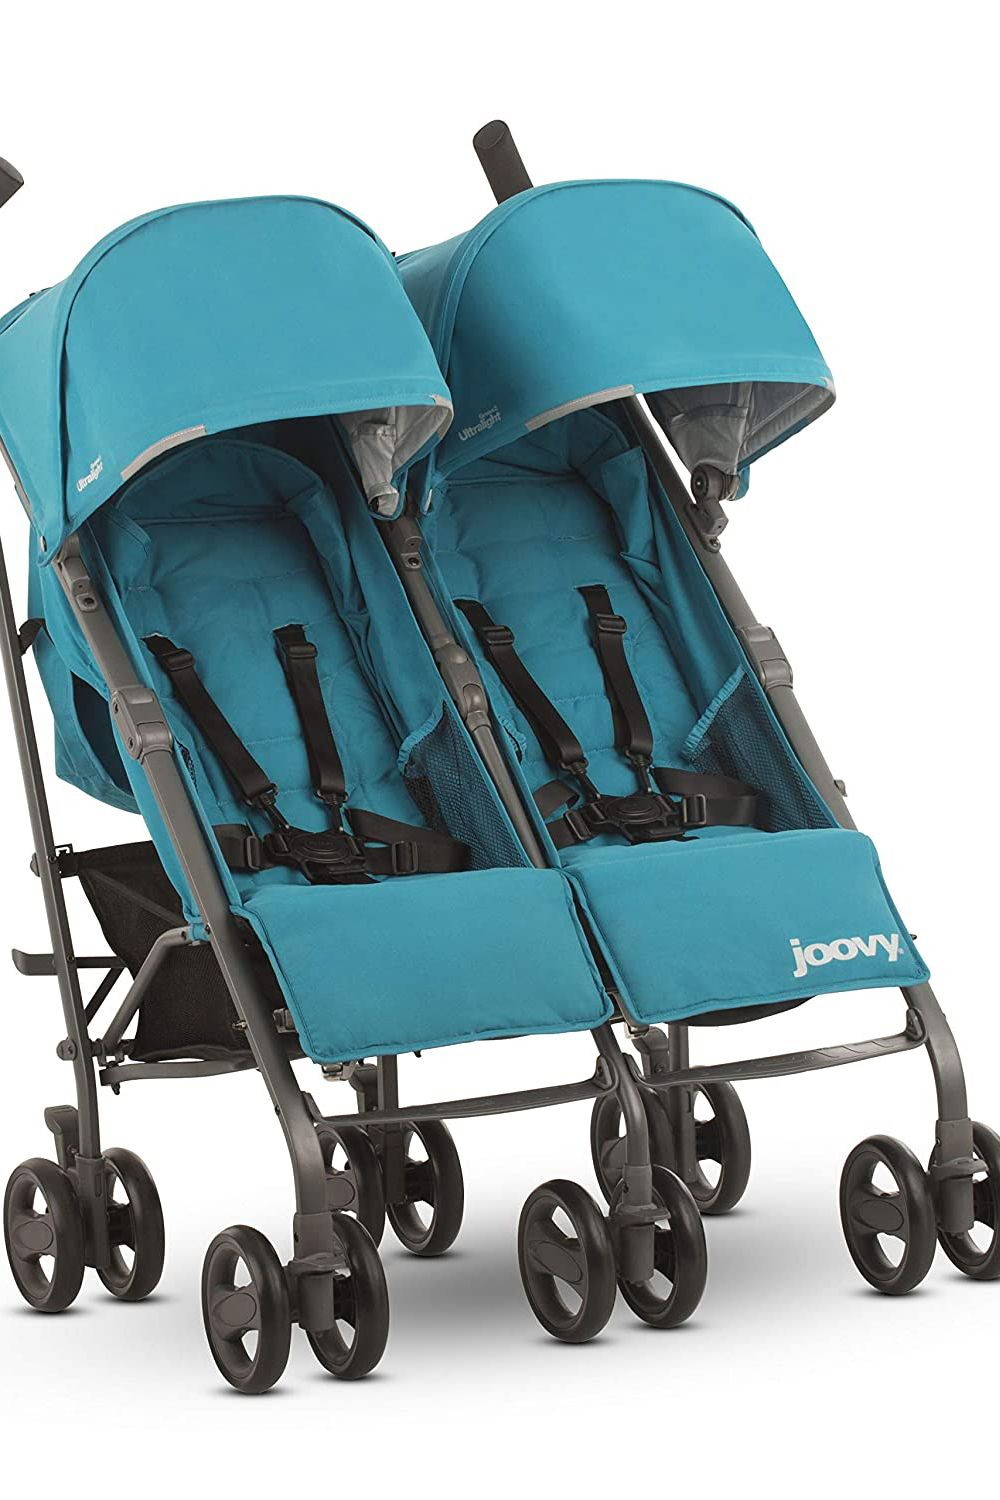 33+ Umbrella strollers for toddlers over 50 lbs ideas